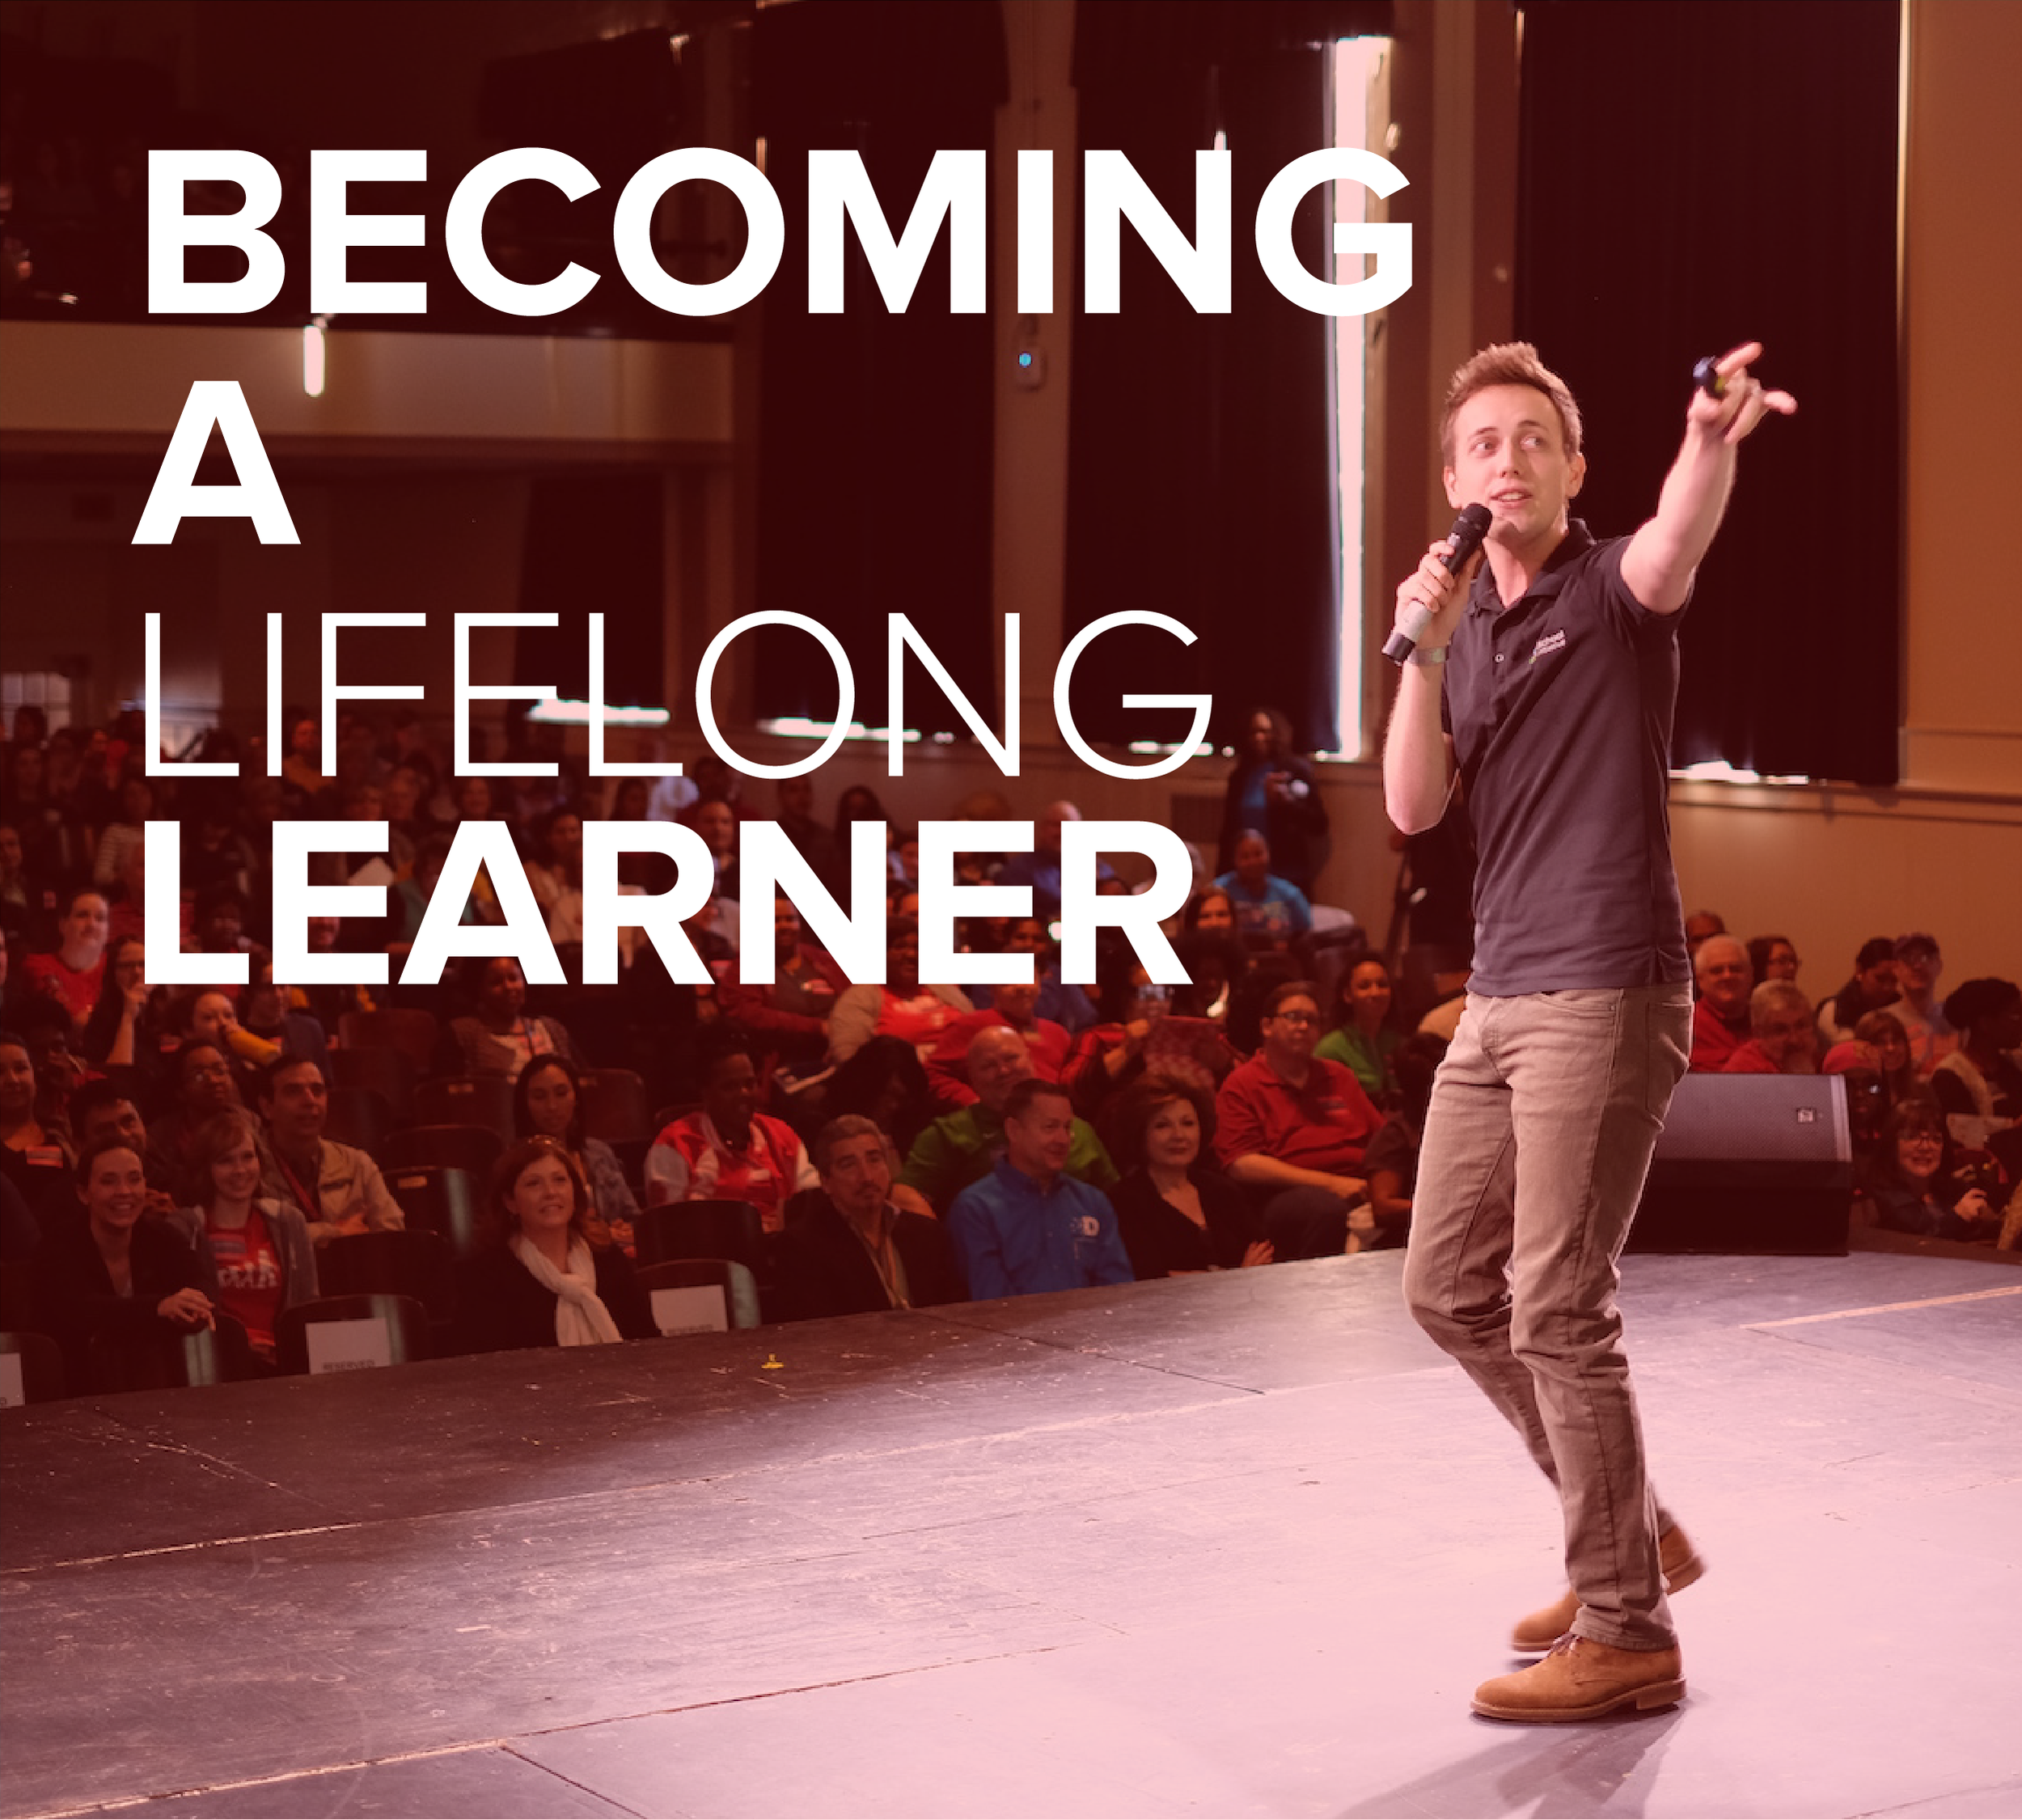 Take a journey with college student, Travis Allen, and learn what it means to be a lifelong learner. This concept has an entirely new definition in today's Information Age and it requires us to create new skills while at the same time, embracing our inner student. Discover how schools, teachers, and the students themselves unintentionally obstruct their own path for the best possible education. And, most importantly, learn how to cultivate the right environment to break past these barriers.